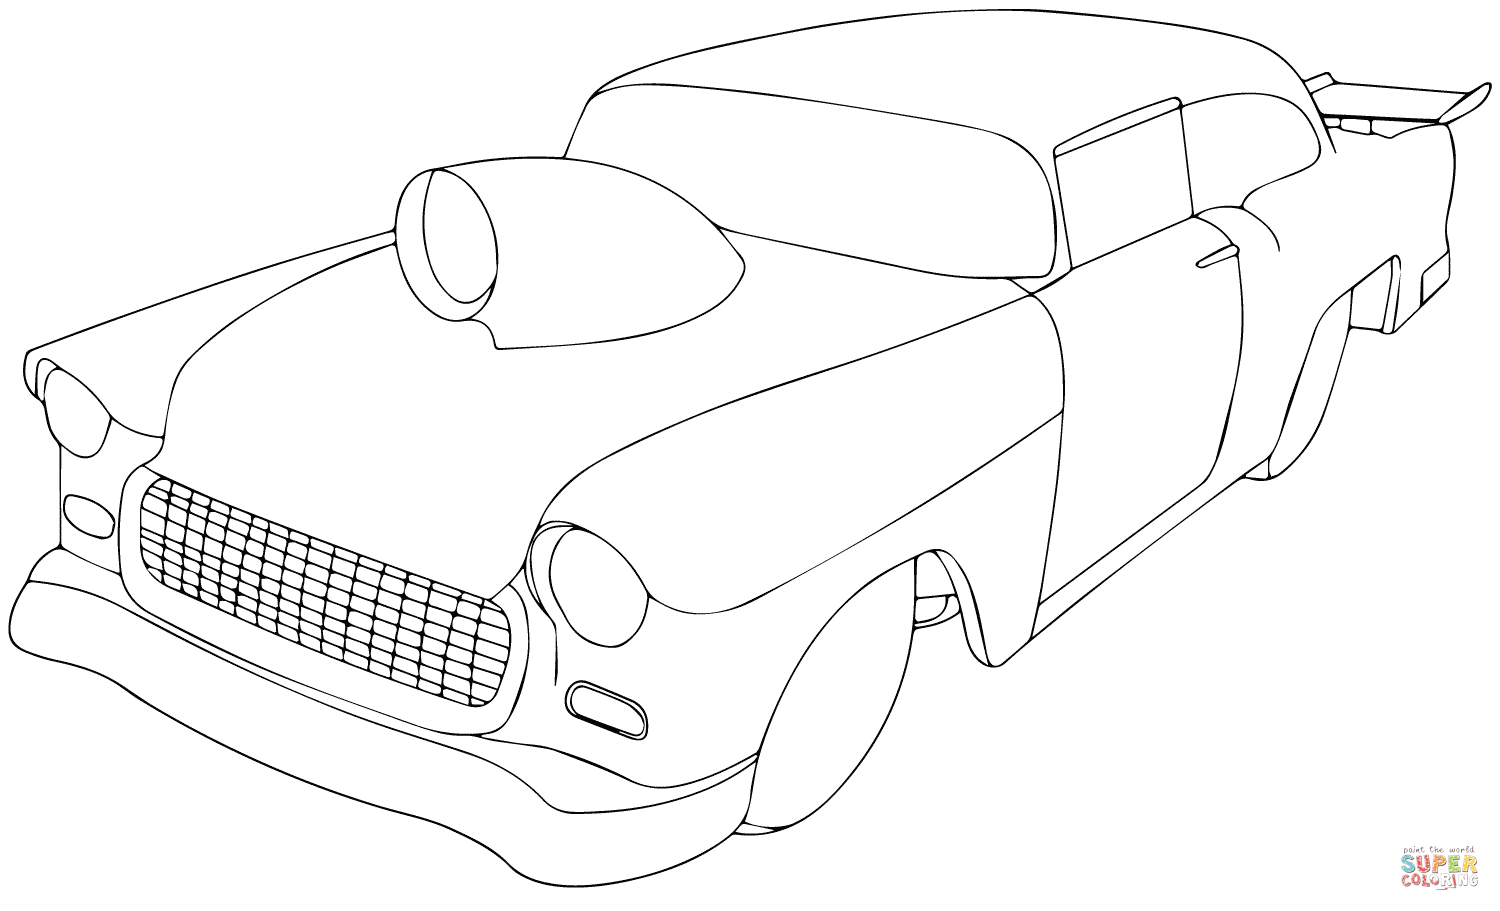 chevy logo drawing at getdrawings free for personal use chevy 1969 Chevy Nova SS 1500x911 1955 chevy pro sportsman coloring page free printable coloring pages